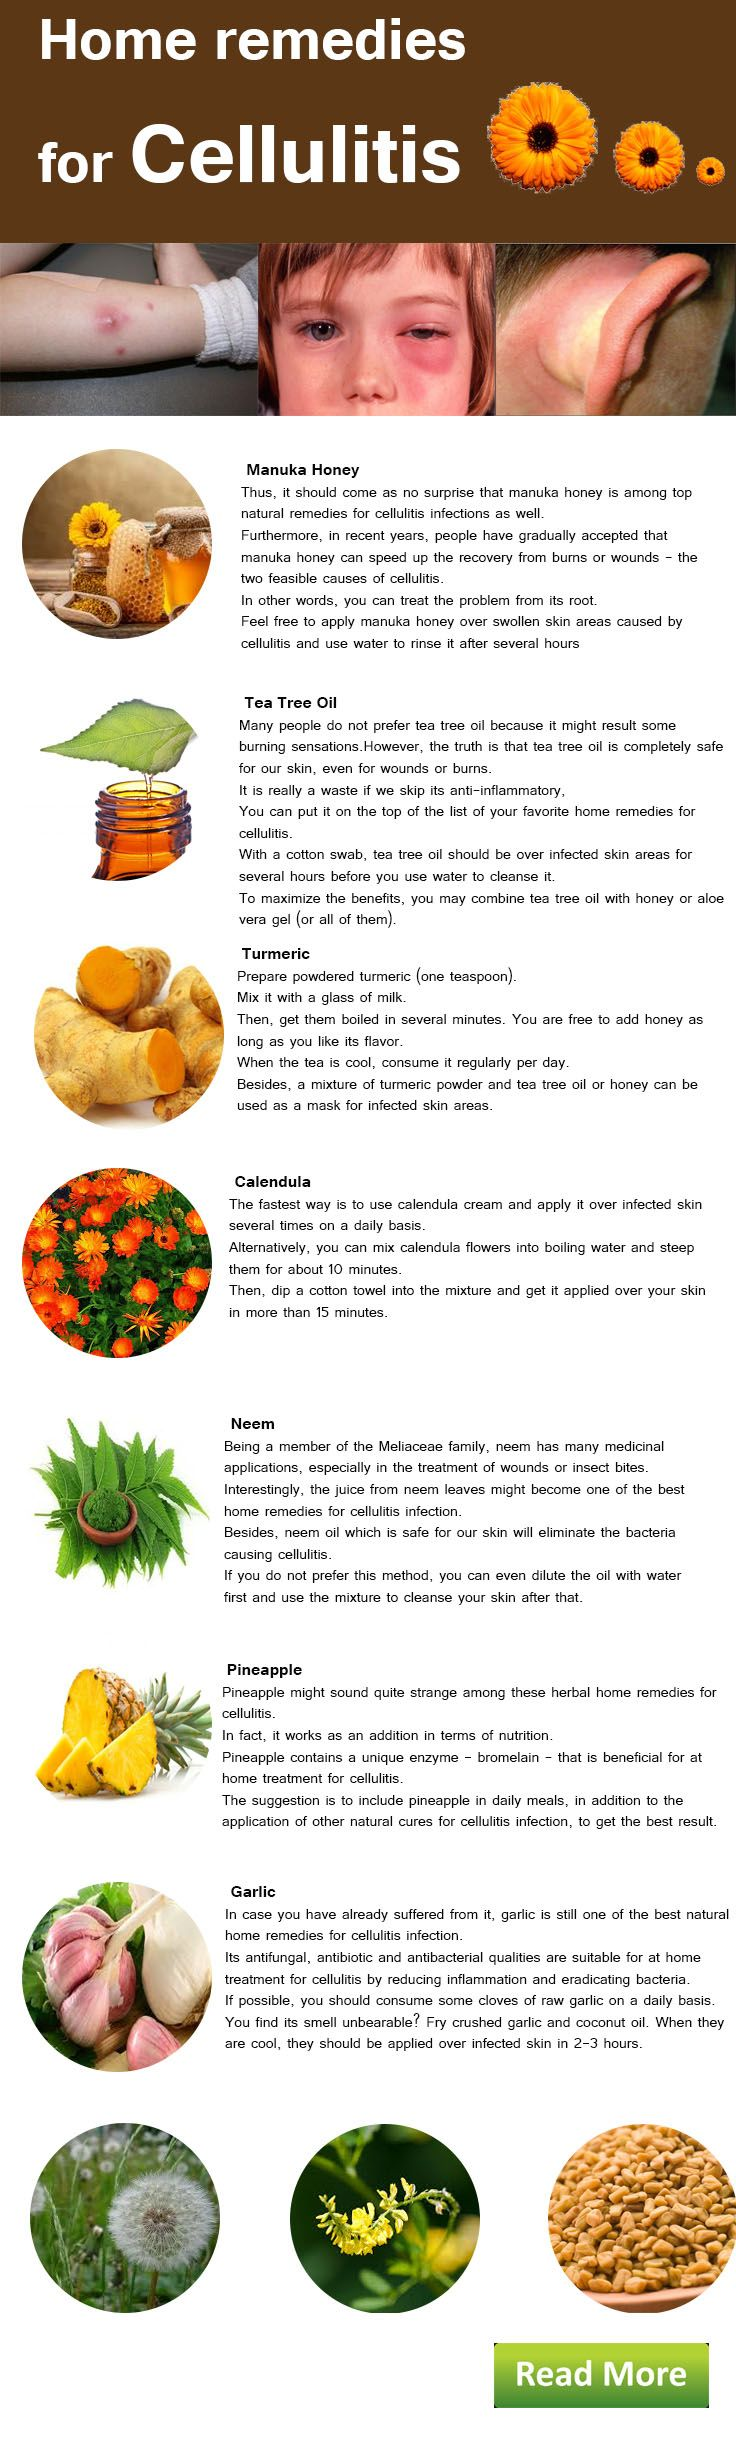 Home remedies for cellulitis: how to get rid of cellulitis with natural home remedies